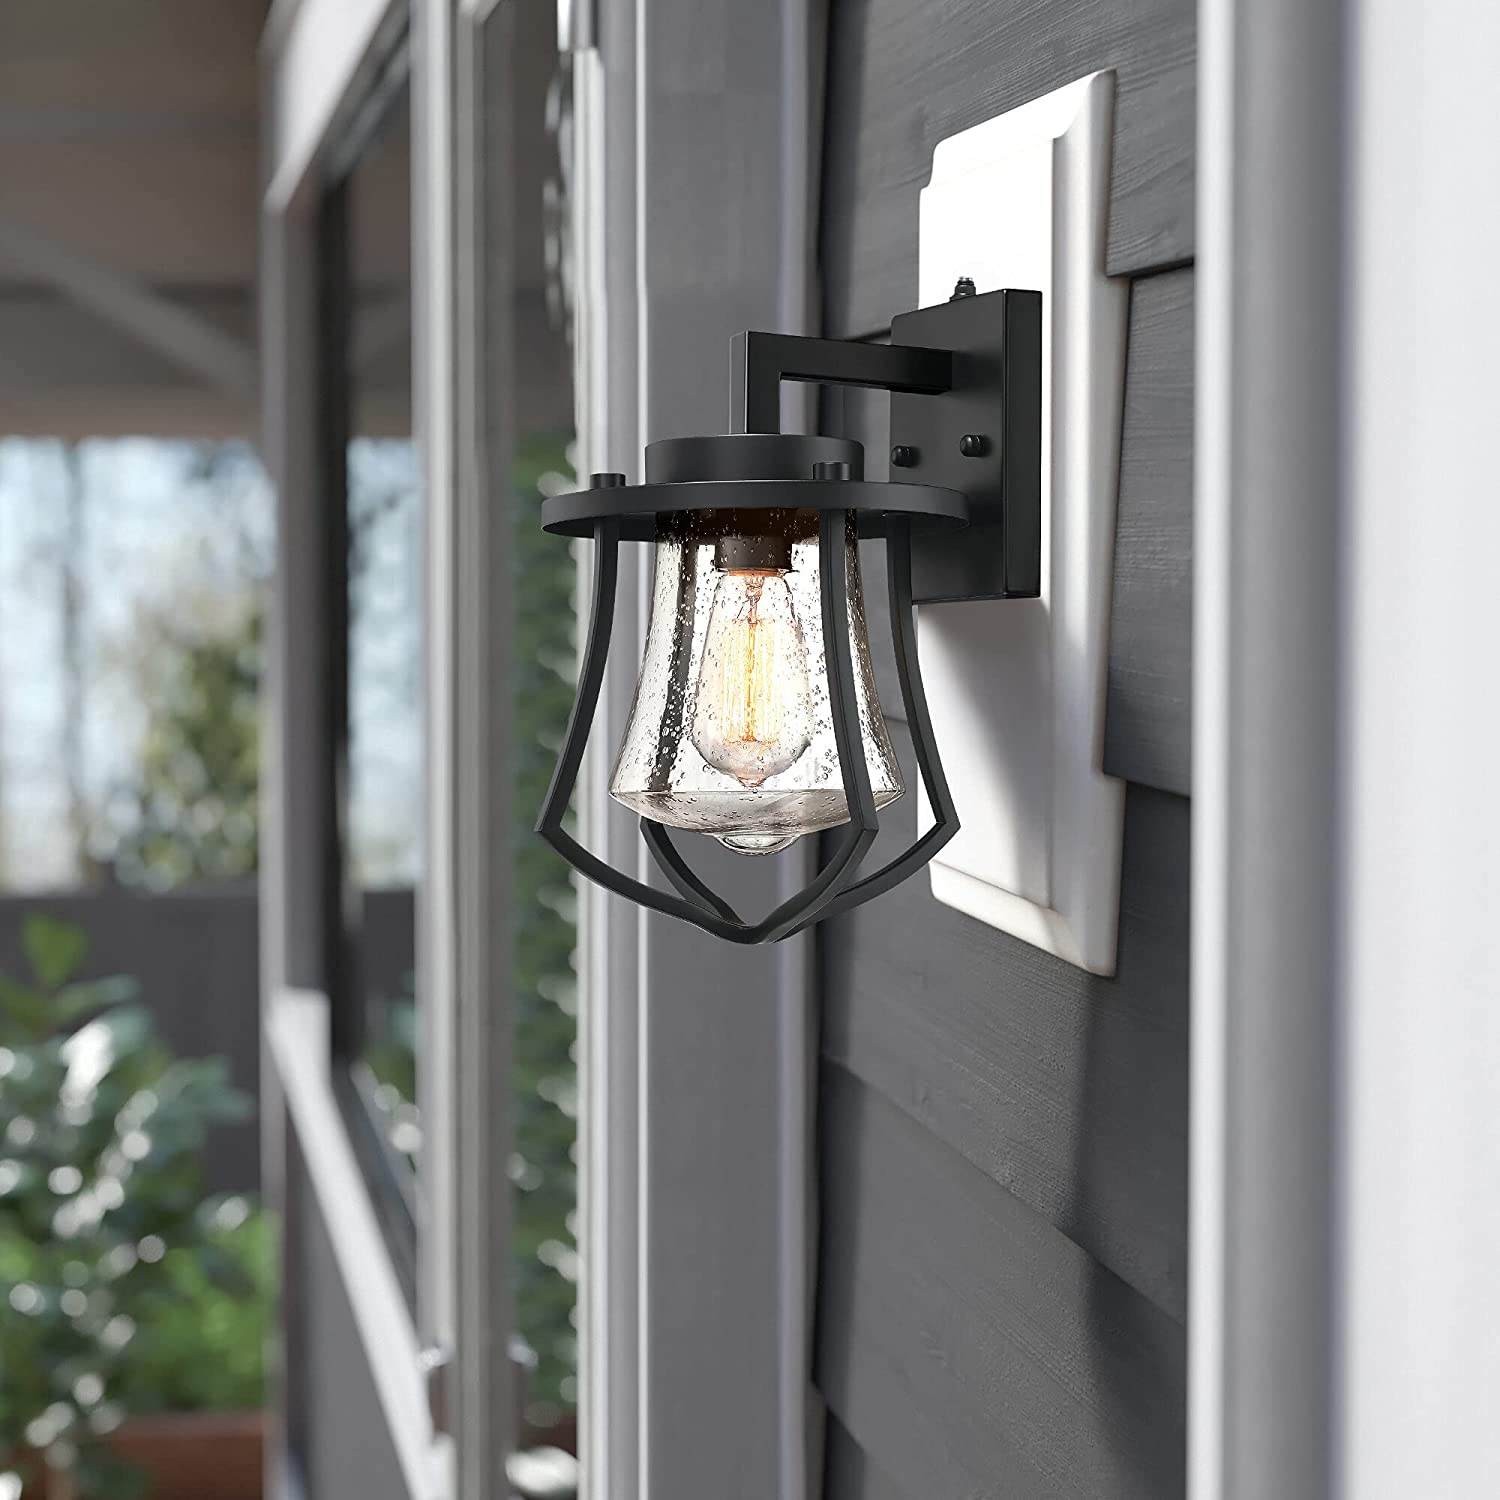 MOTINI Super Ranking TOP7 popular specialty store Dusk to Dawn Outdoor Lig Exterior Lantern Black Wall